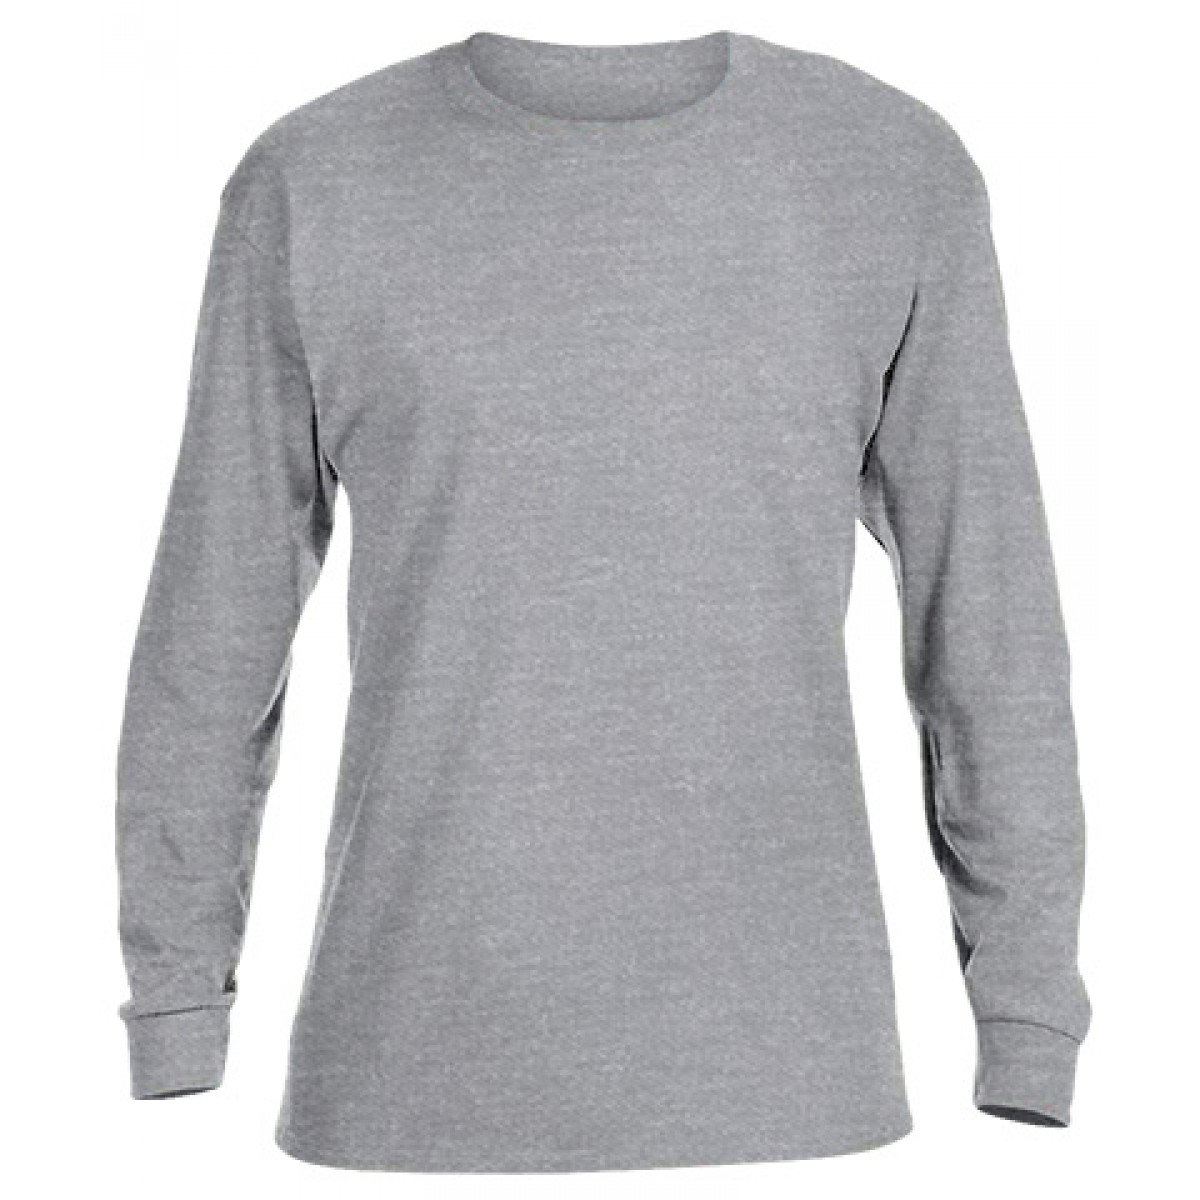 Basic Long Sleeve Crew Neck -Ash Gray-L